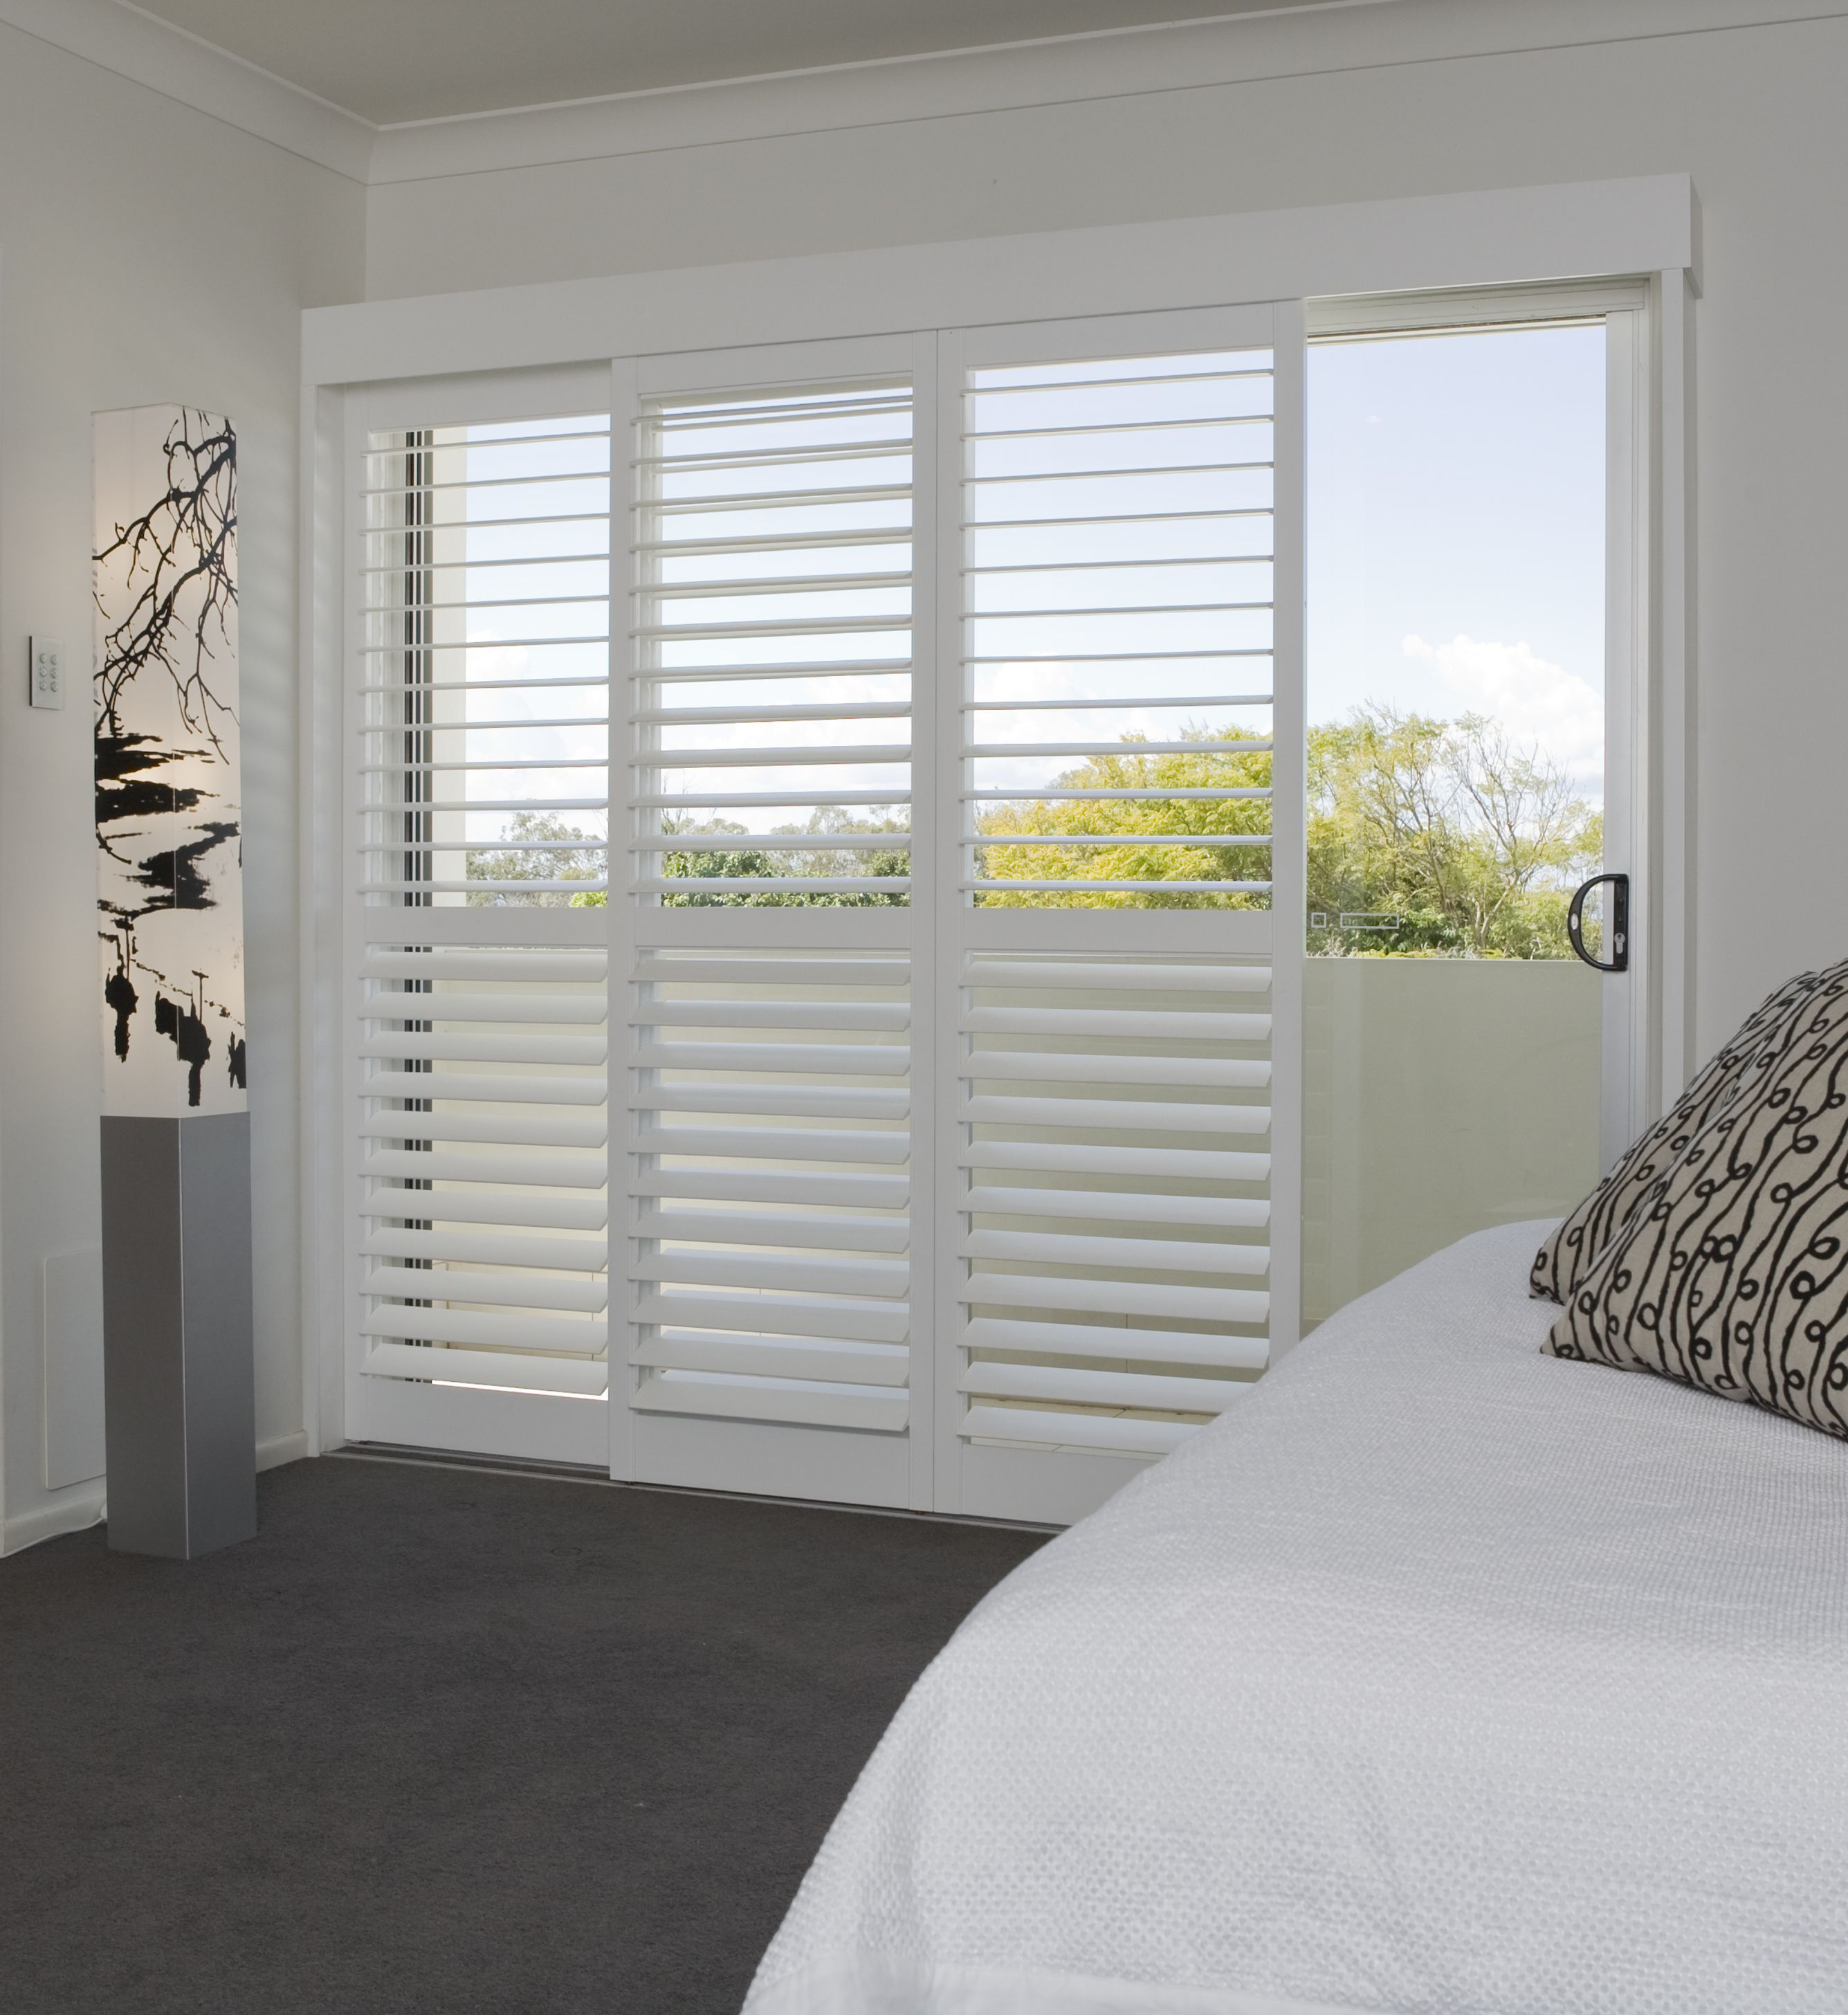 Pin by kathy howe on shutters pinterest brisbane and window